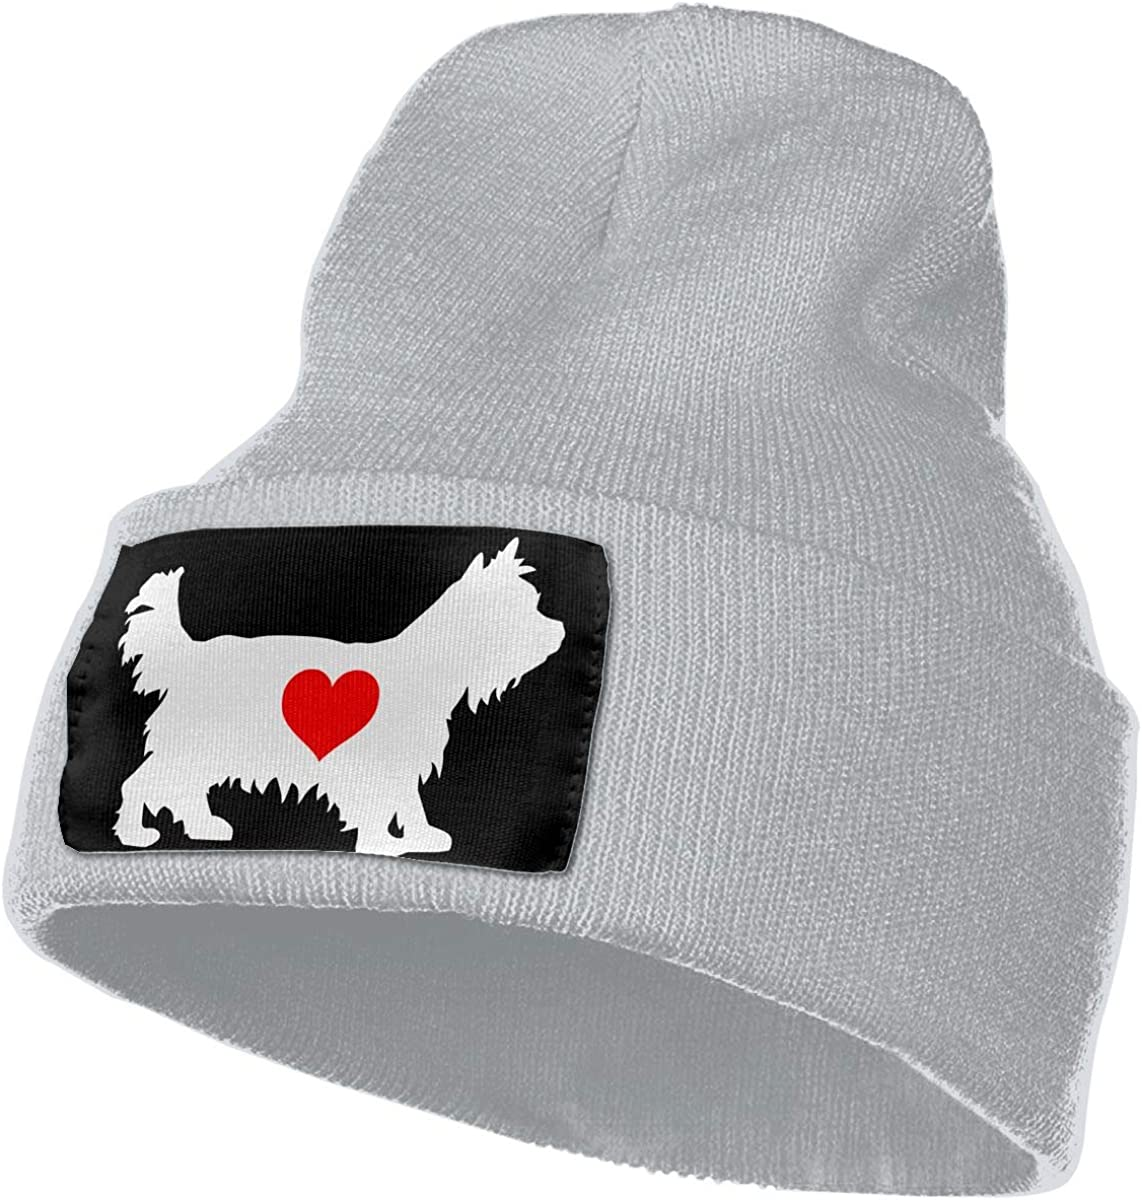 MXMAOM9MX Yorkshire Terrier with Heart-1 Warm Knitting Hat Mens Womens 100/% Acrylic Beanie Hat